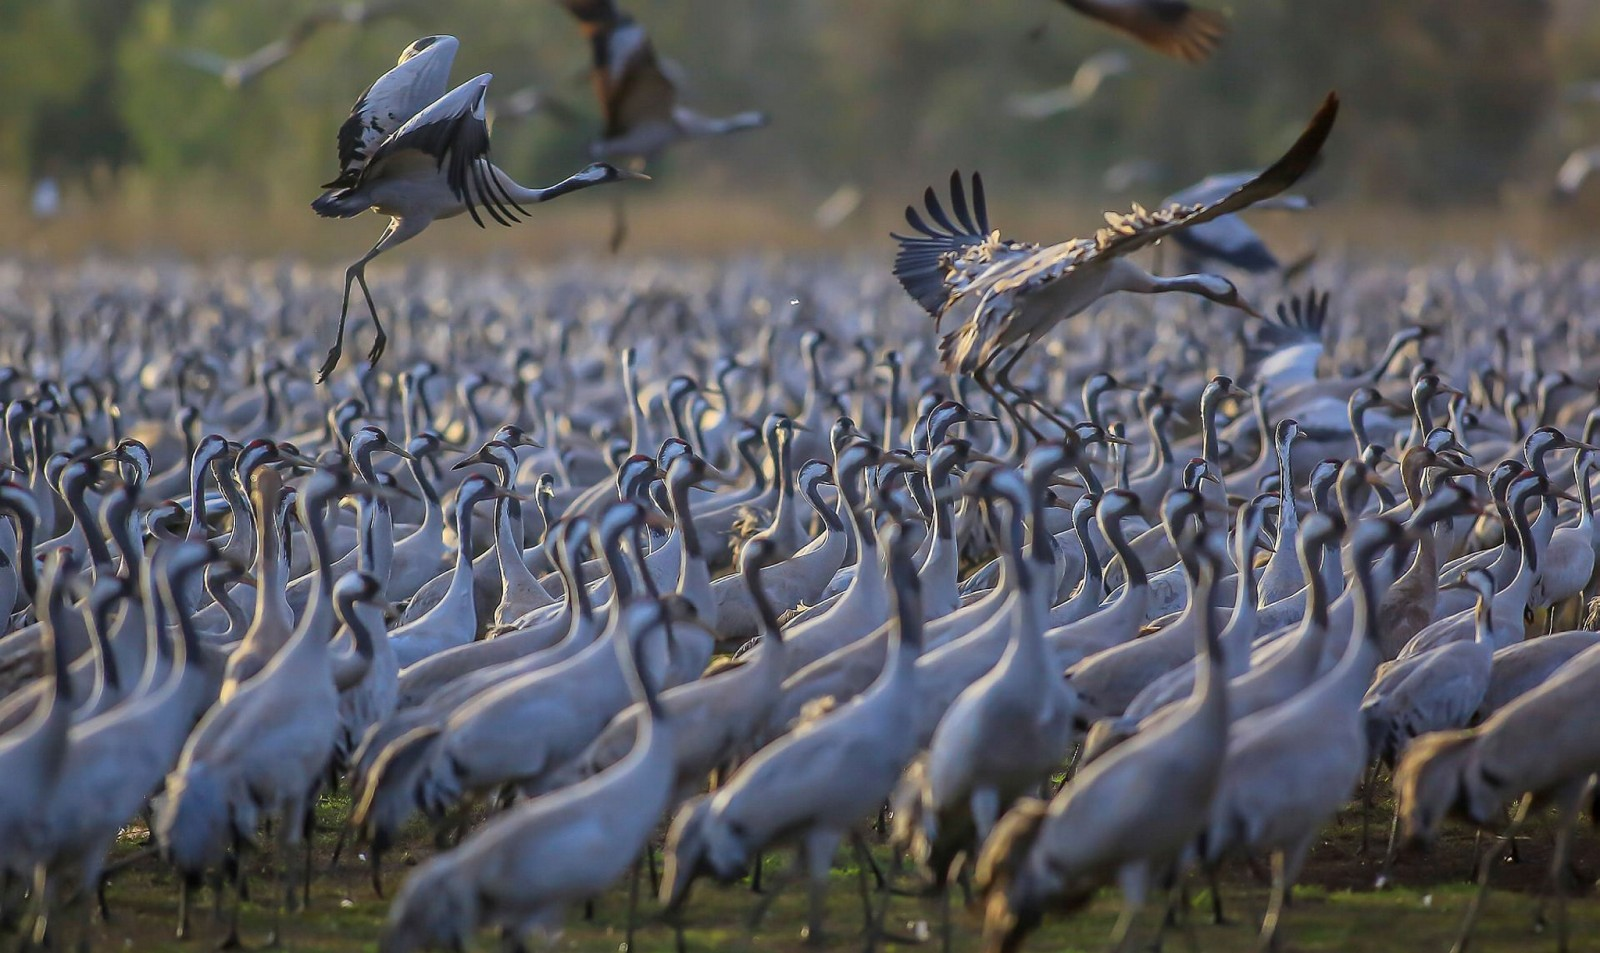 Thousands of cranes at Hula park. Photo by FLASH90